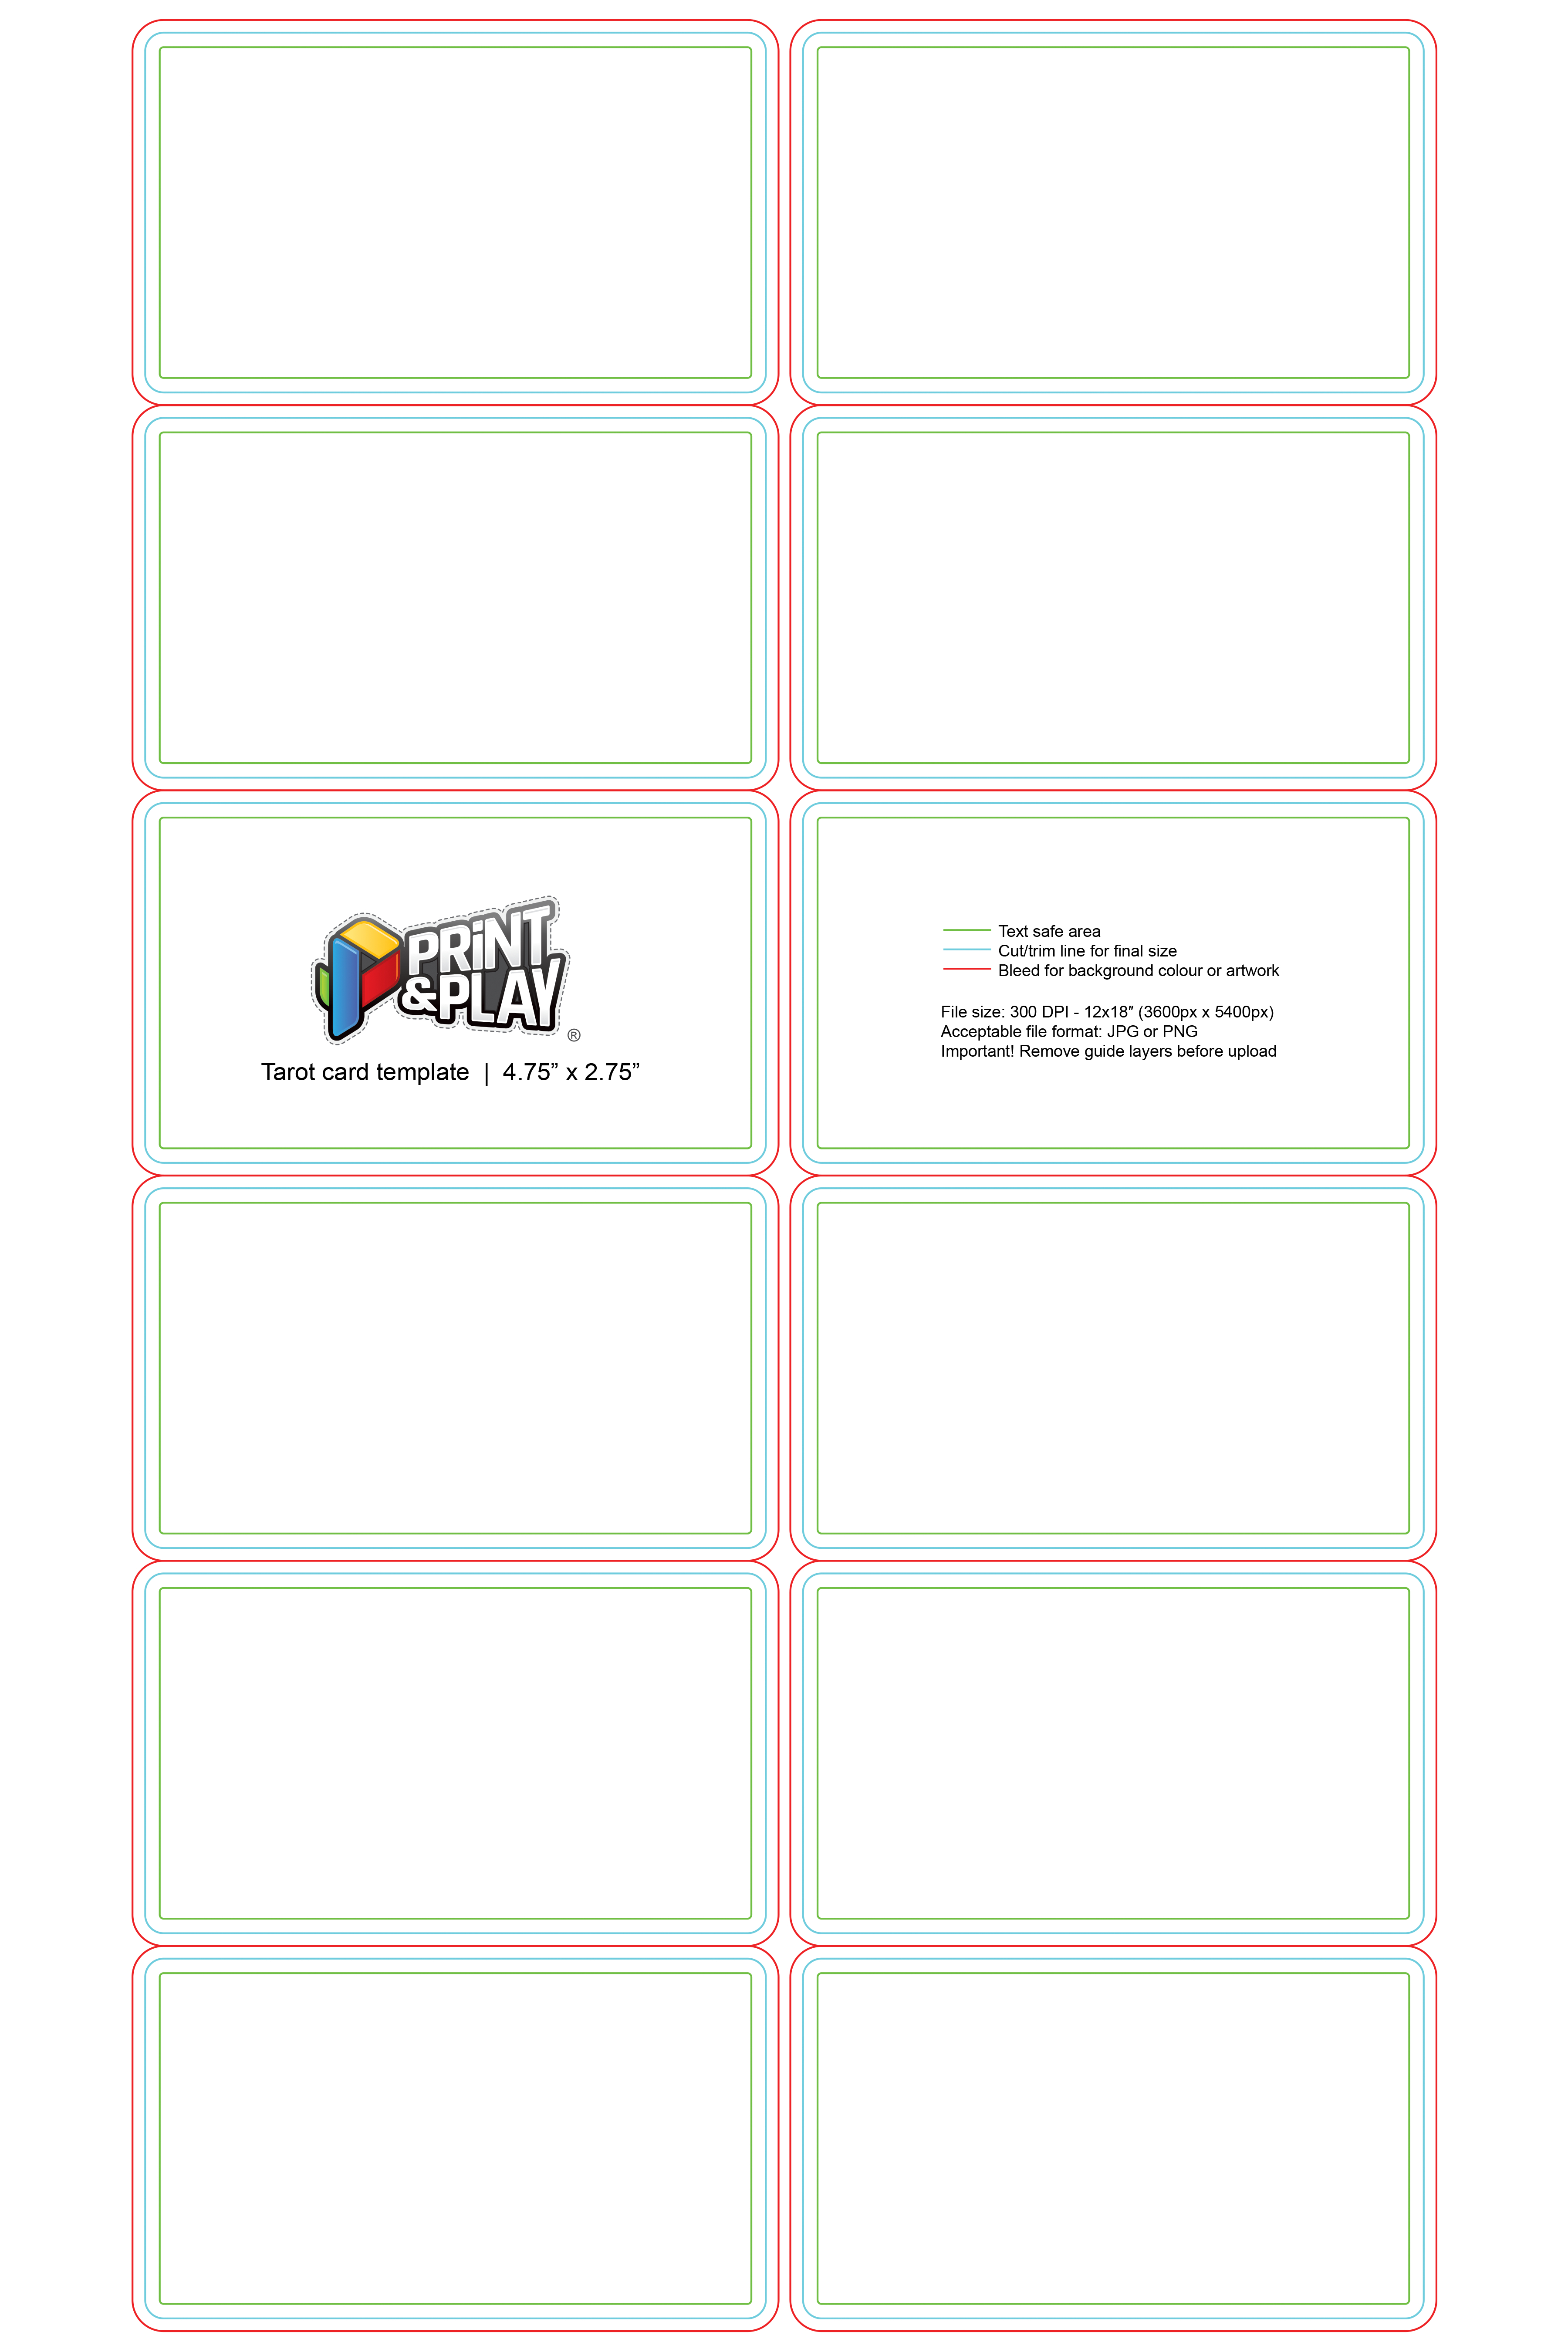 Playing Cards  Formatting  Templates  Print  Play Intended For Playing Card Template Illustrator